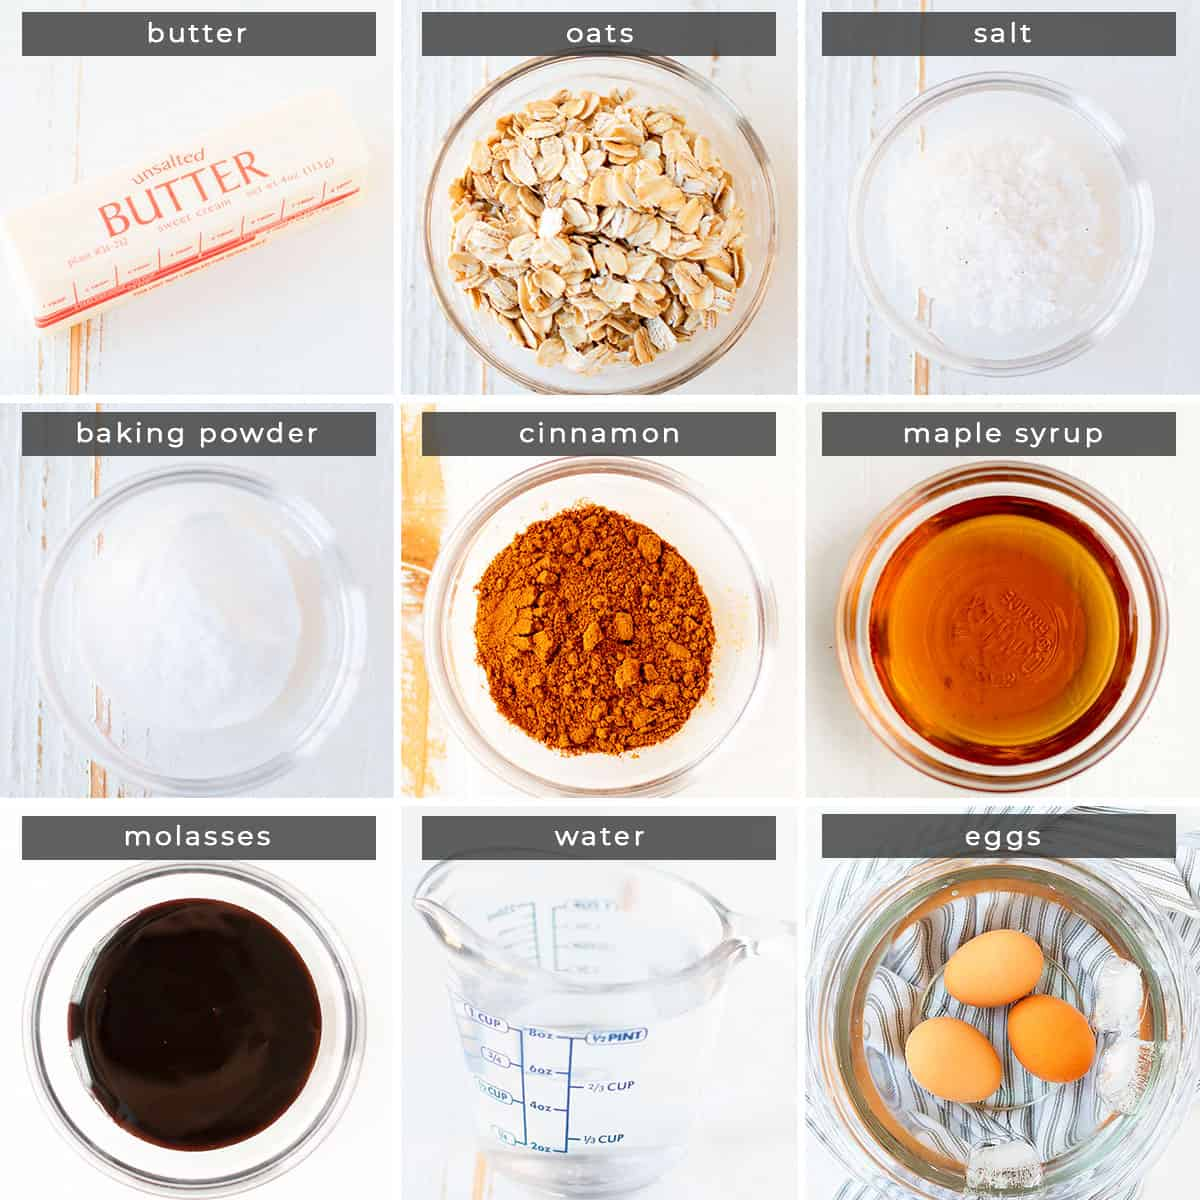 Image containing recipe ingredients butter, oats, salt, baking powder, cinnamon, maple syrup, molasses, water, eggs.